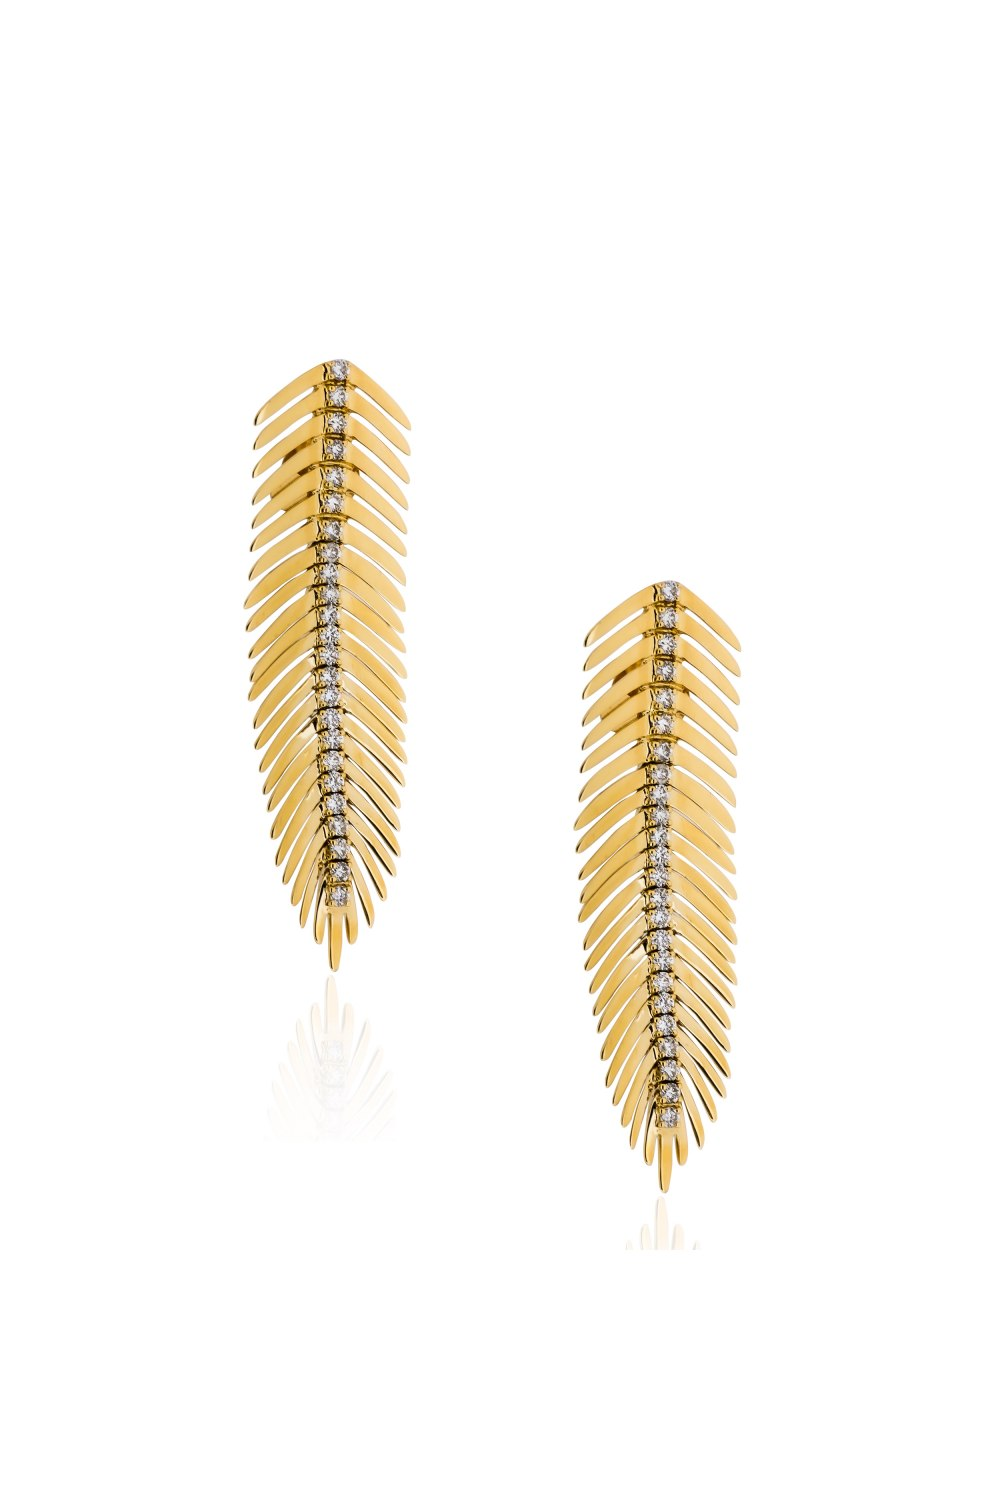 Kessaris-Gold Diamond Feather Earrings